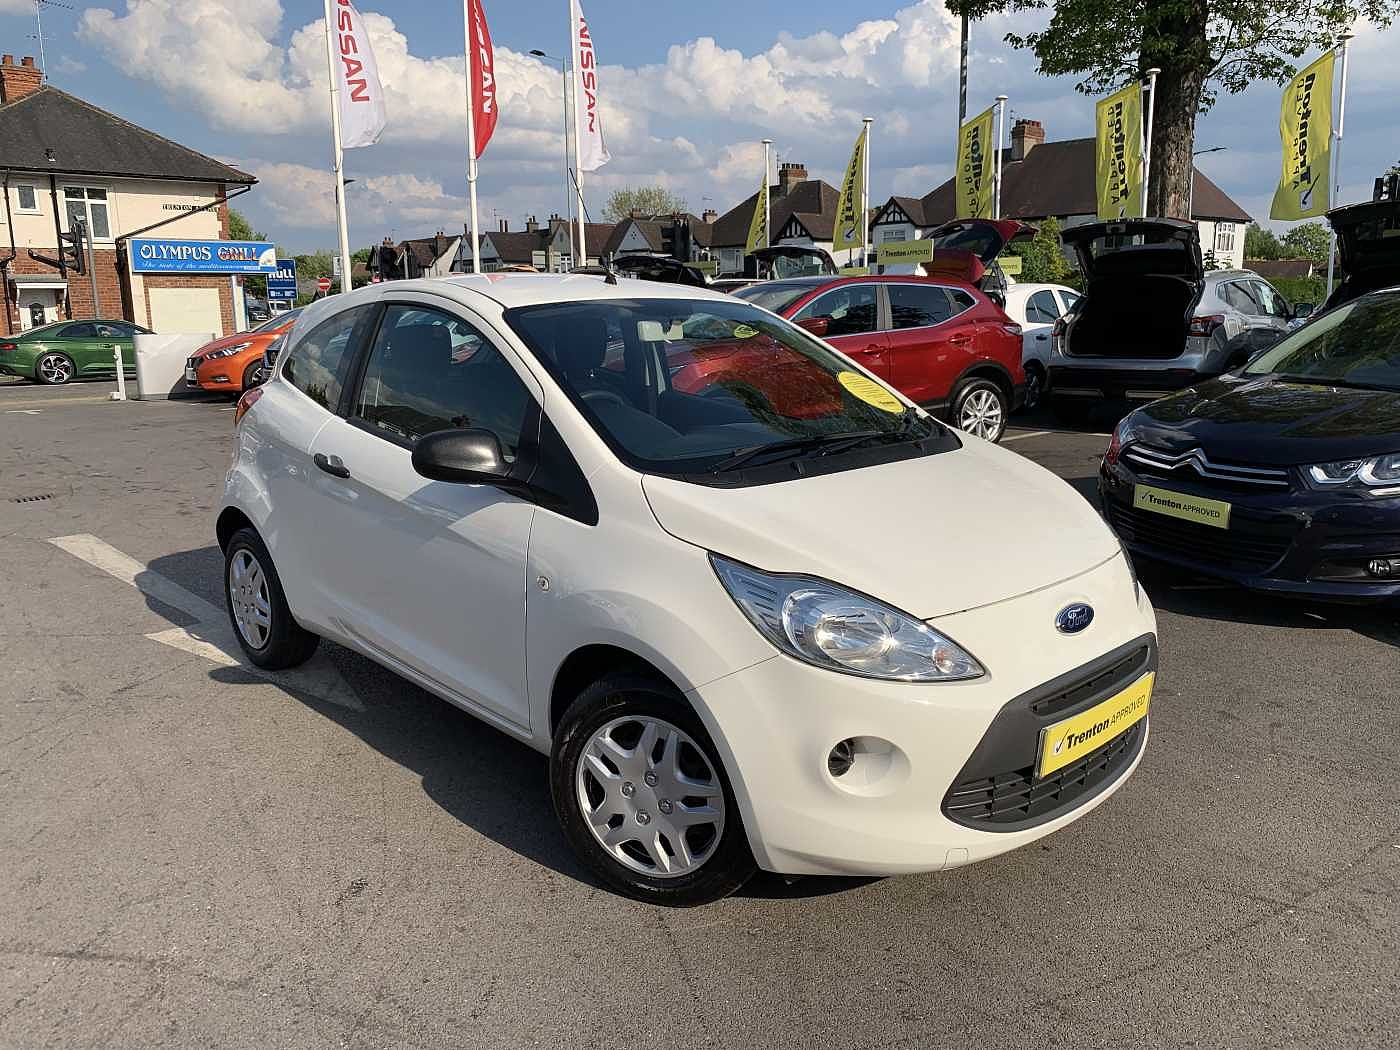 Ford Ka 1.2 [69] Studio 3dr Hatchback